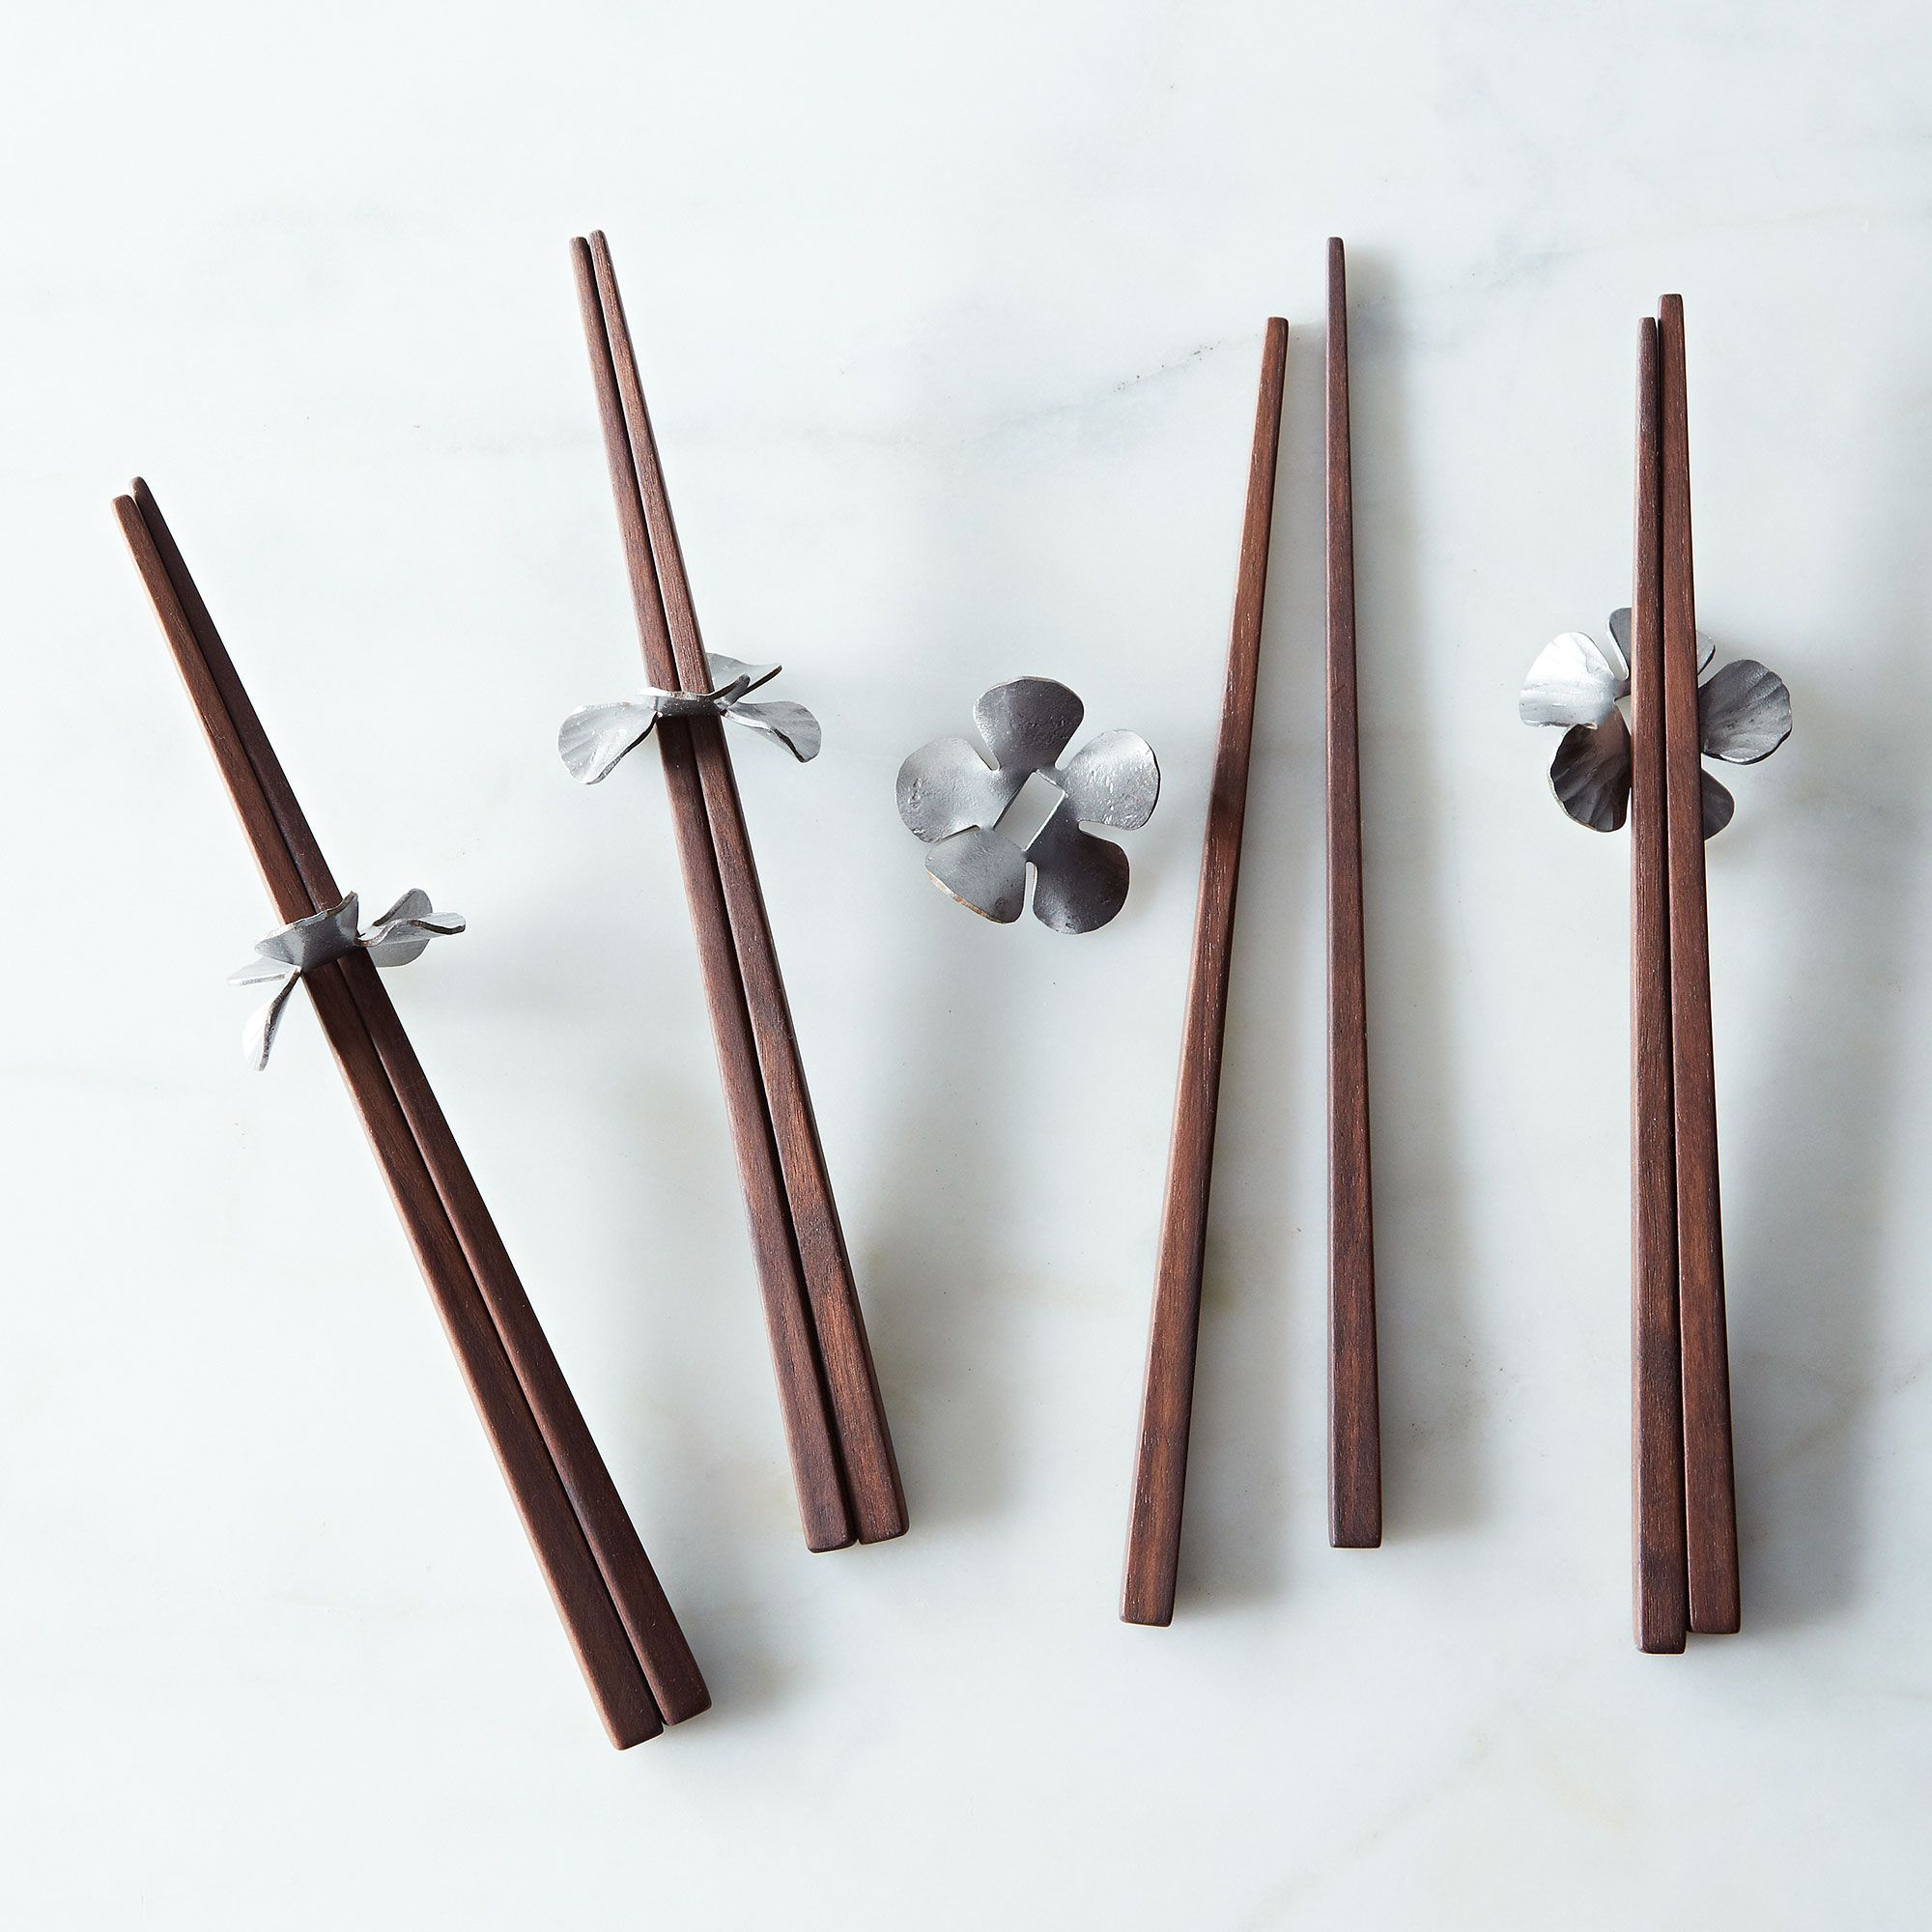 E6ef156e a0f5 11e5 a190 0ef7535729df  2014 0219 roaring dog studios walnut chopsticks holder set of 4 004